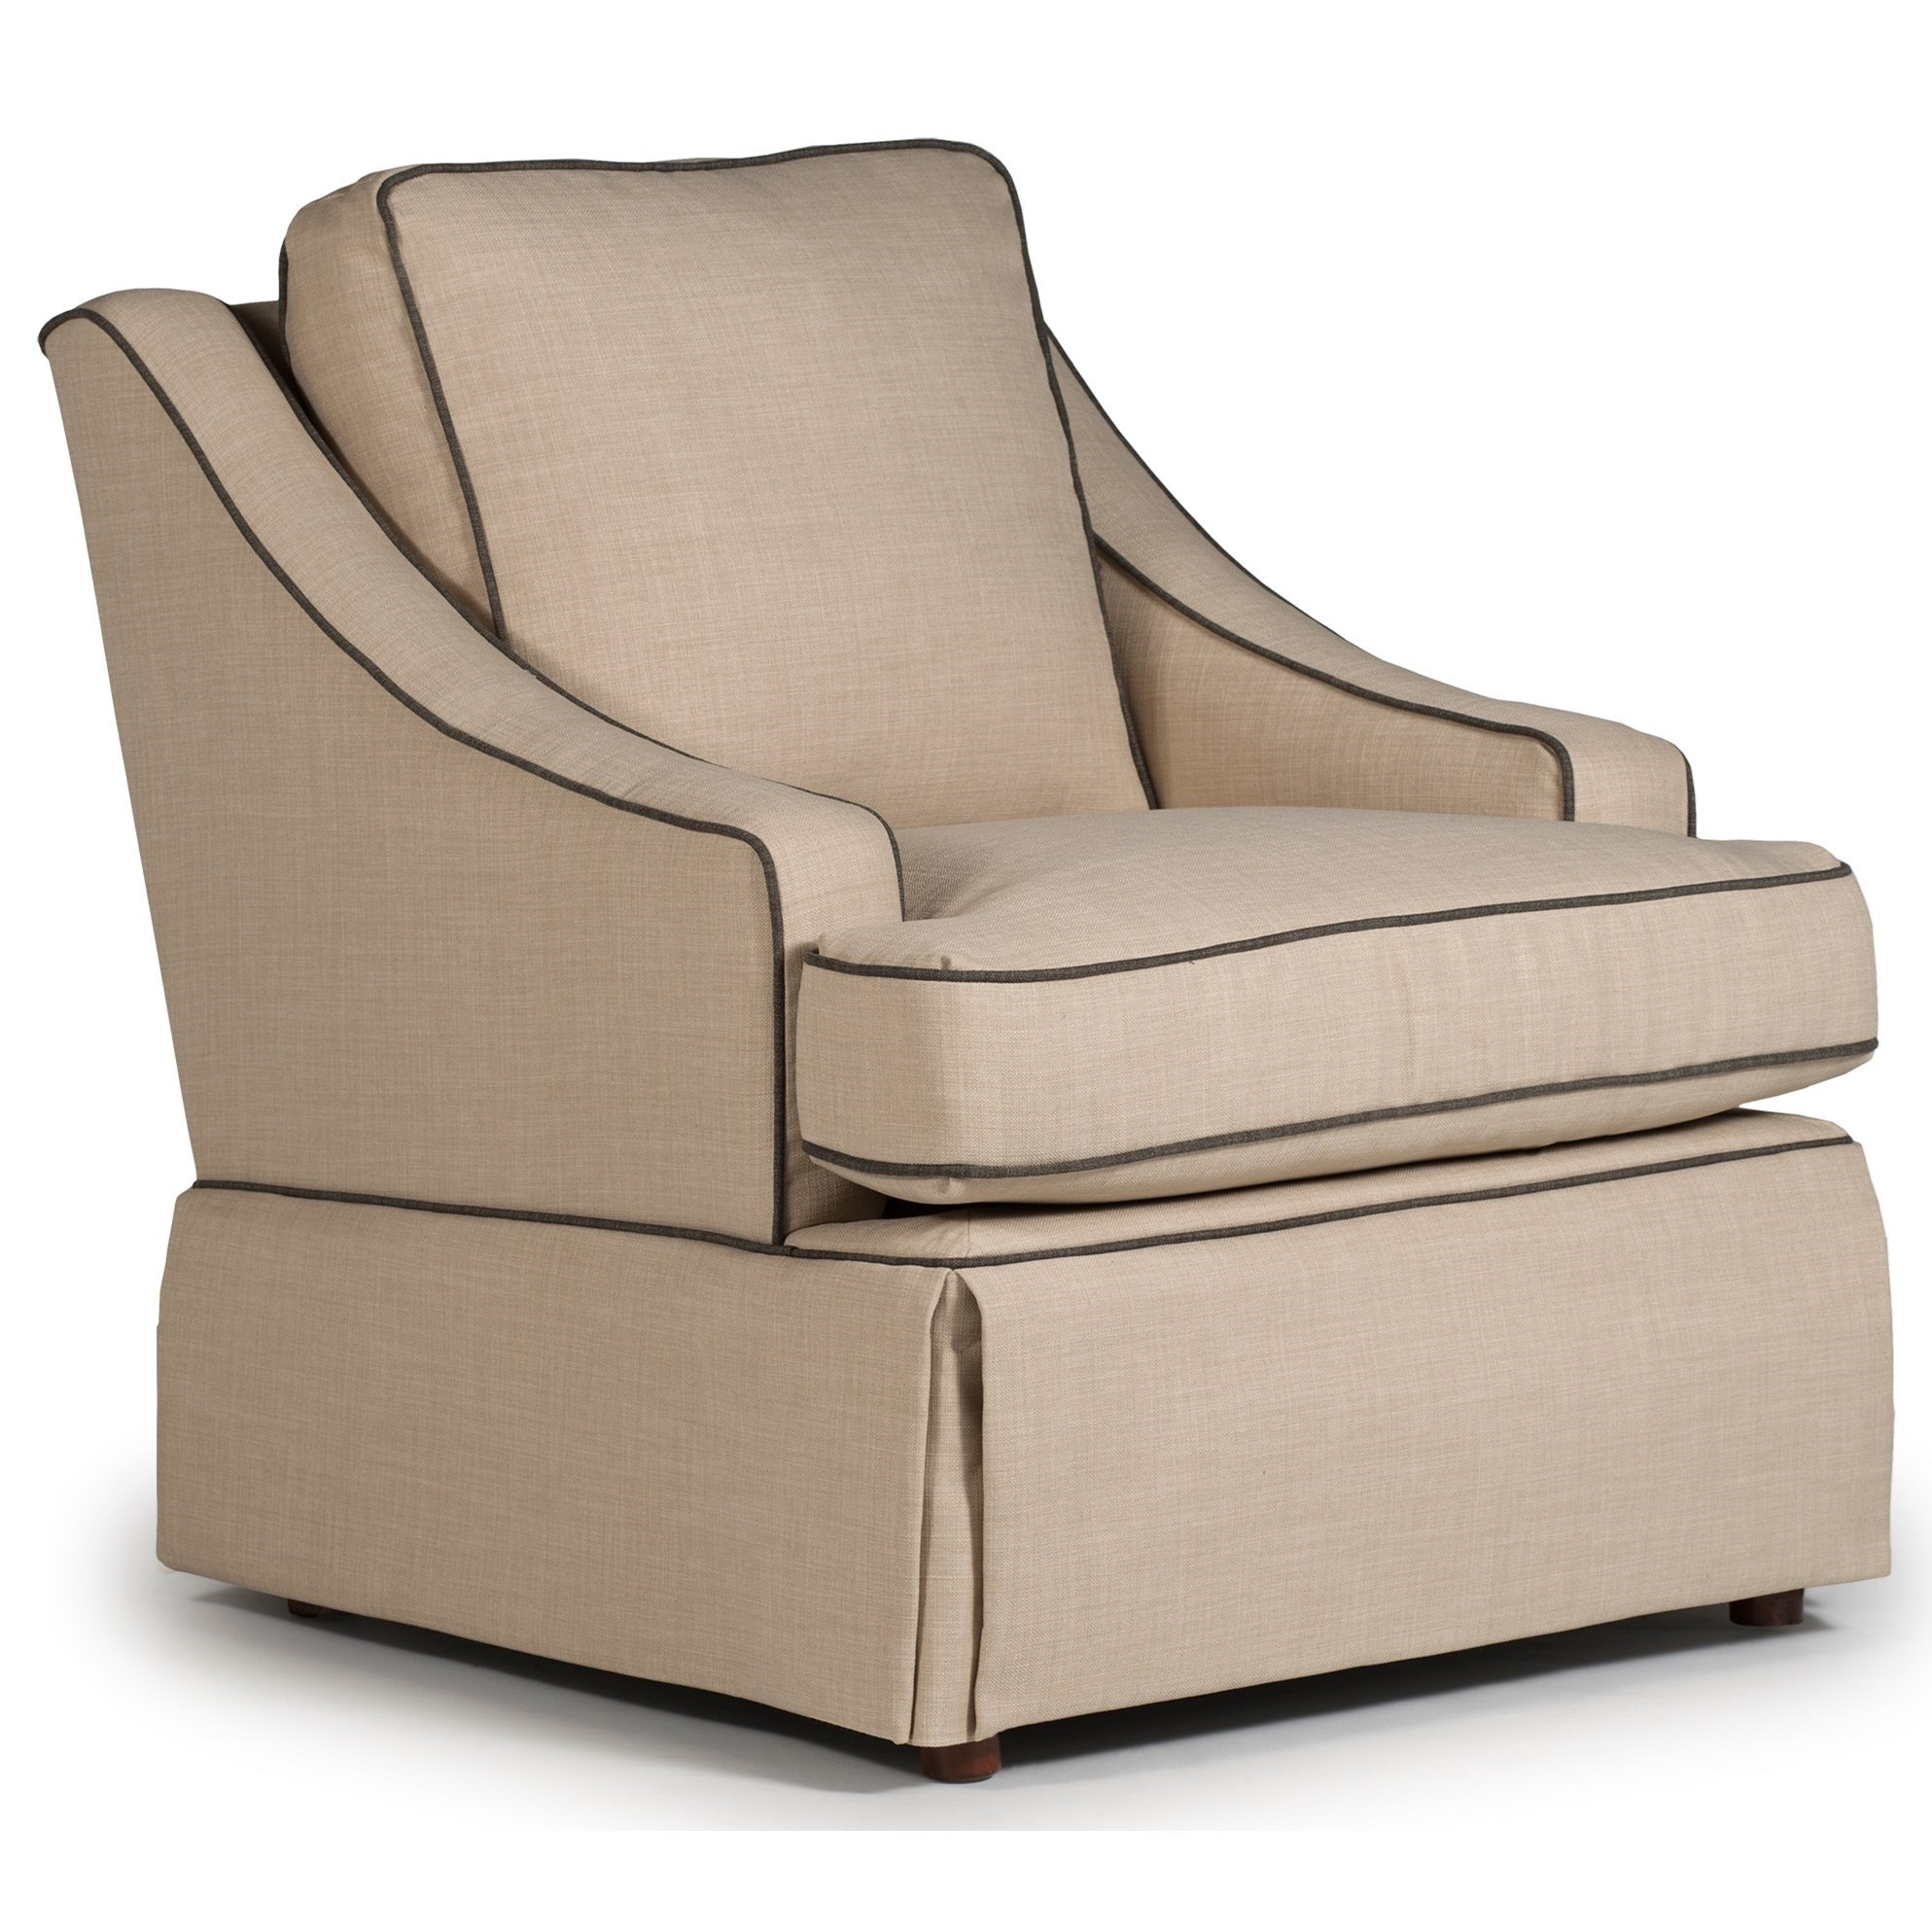 Swivel Glide Chairs Ayla Swivel Glider